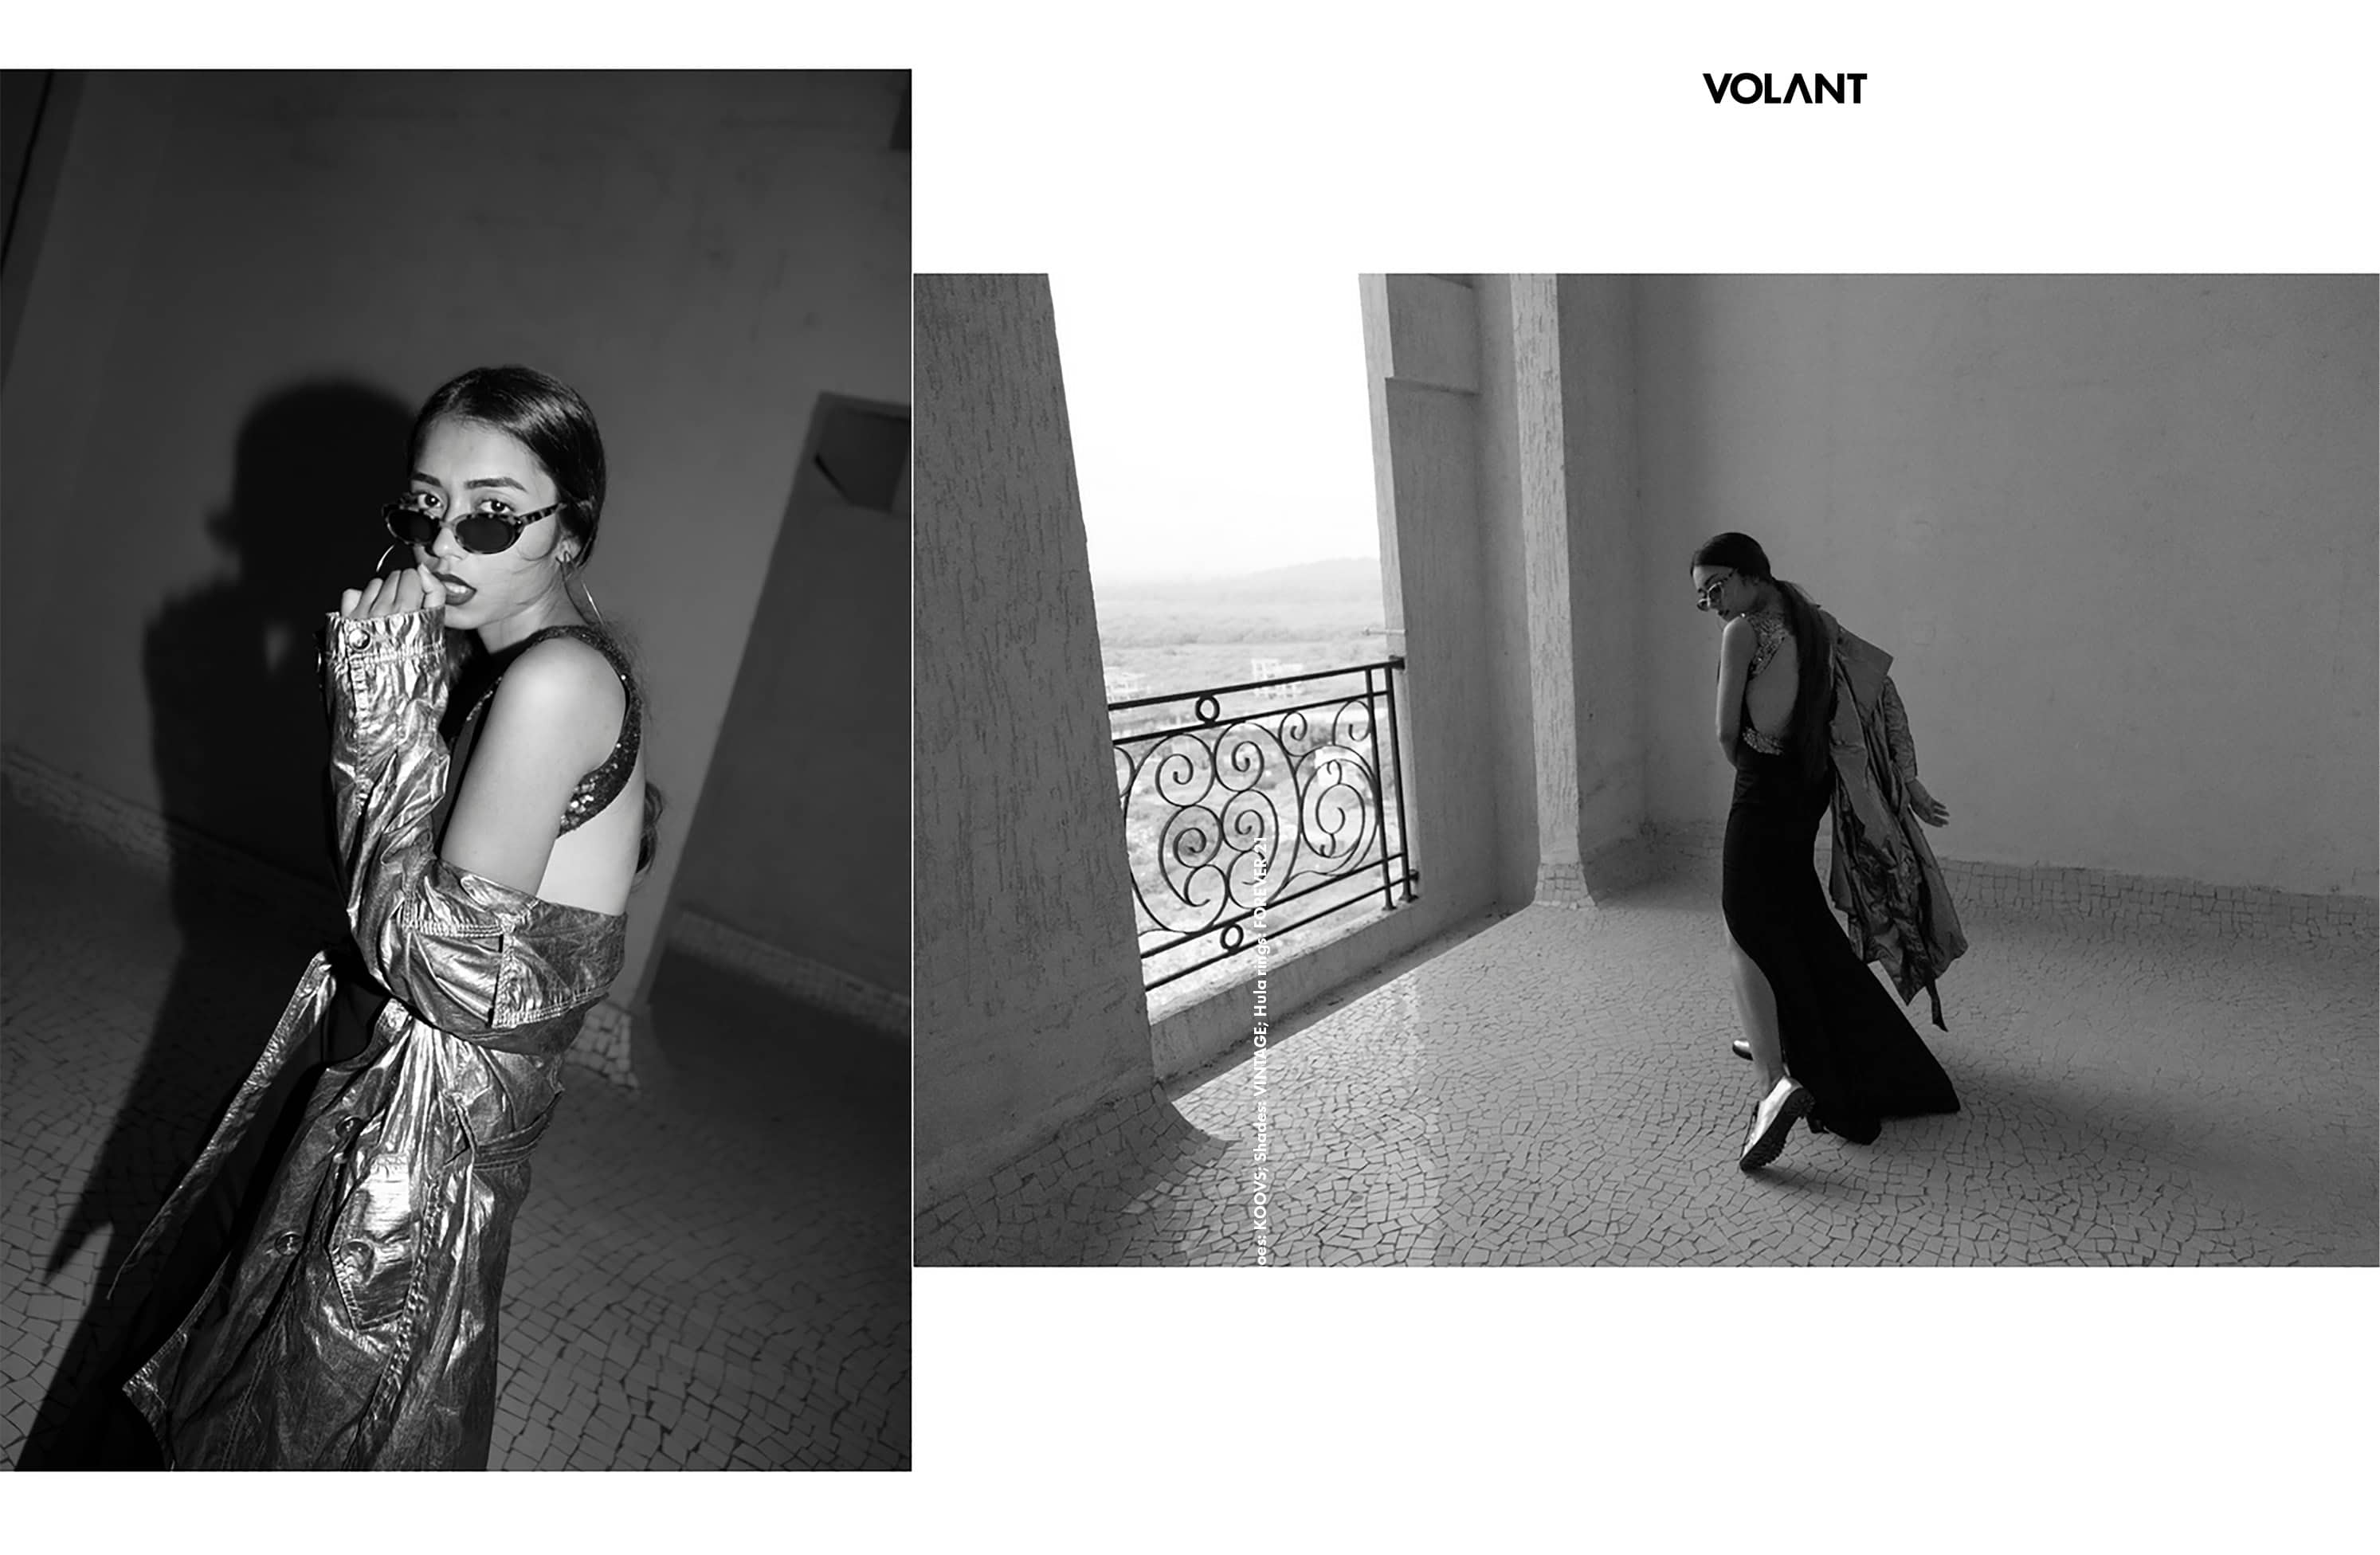 volant-webitorial-toldyou4